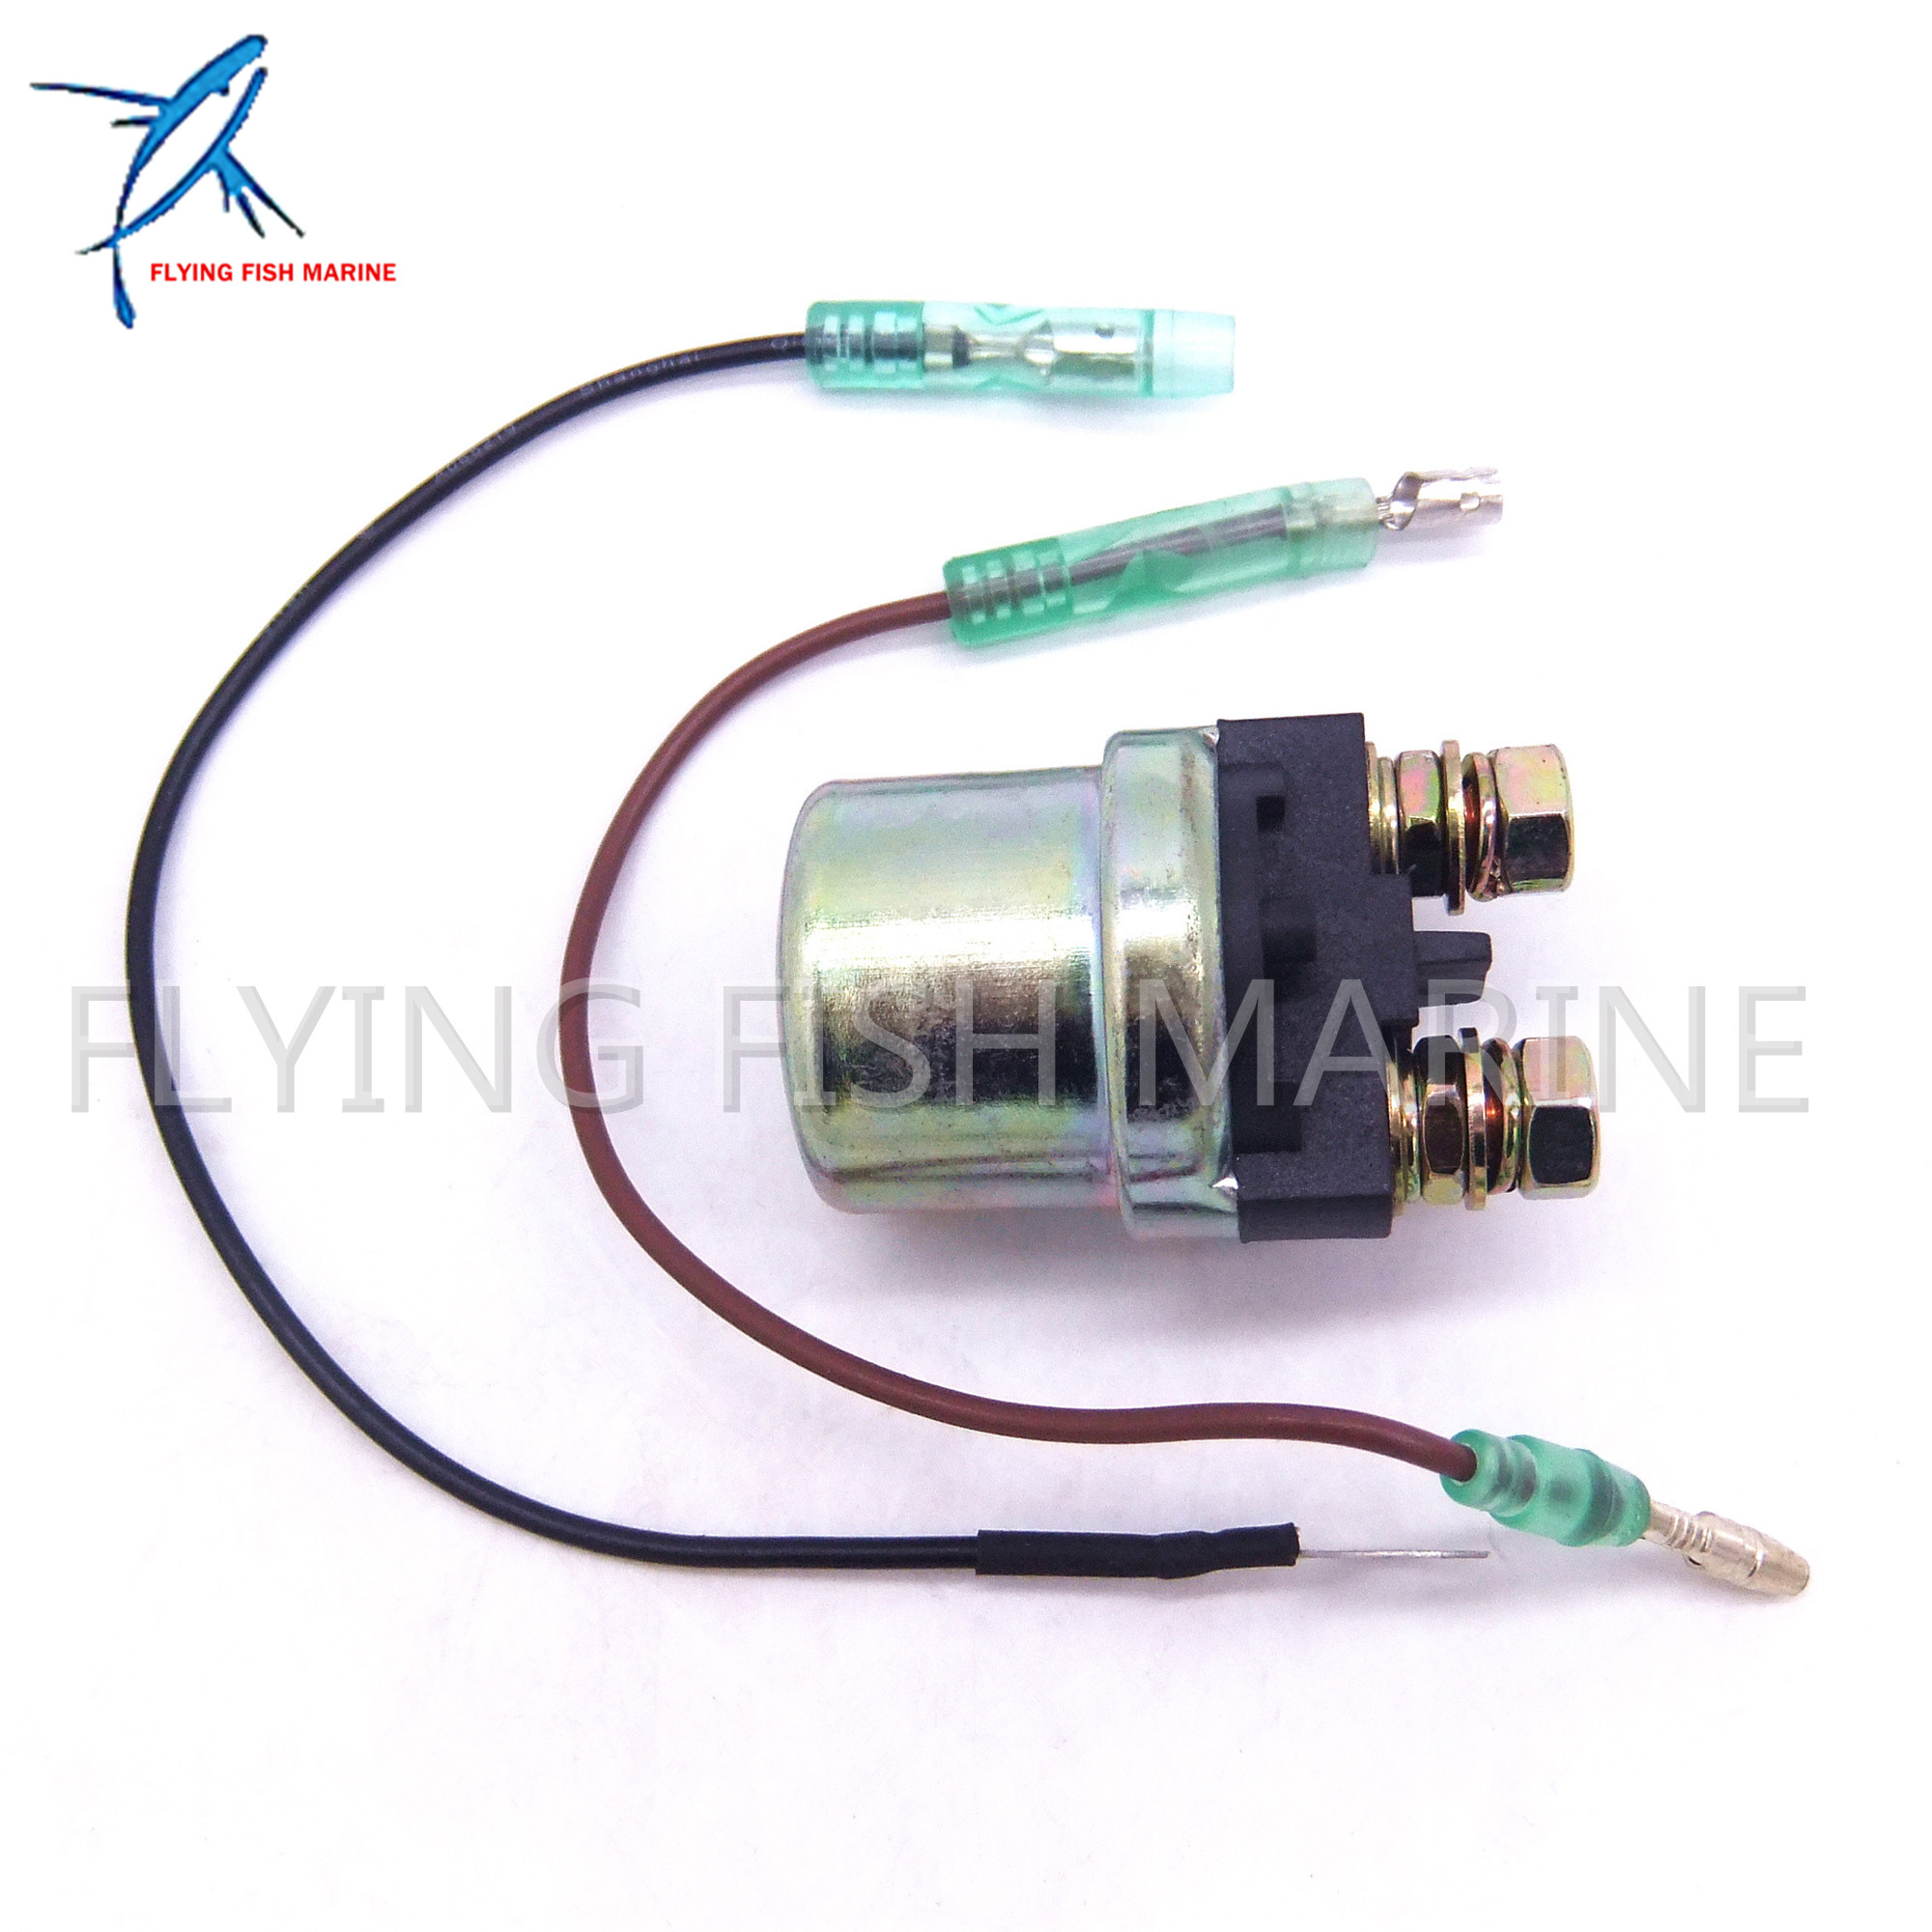 6G1-81940-00 6G1-81941-10 6G1-8194A-10 Starter Relay / Solenoid Assy For Yamaha Boat Motor 9.9HP 15HP 20HP 25HP